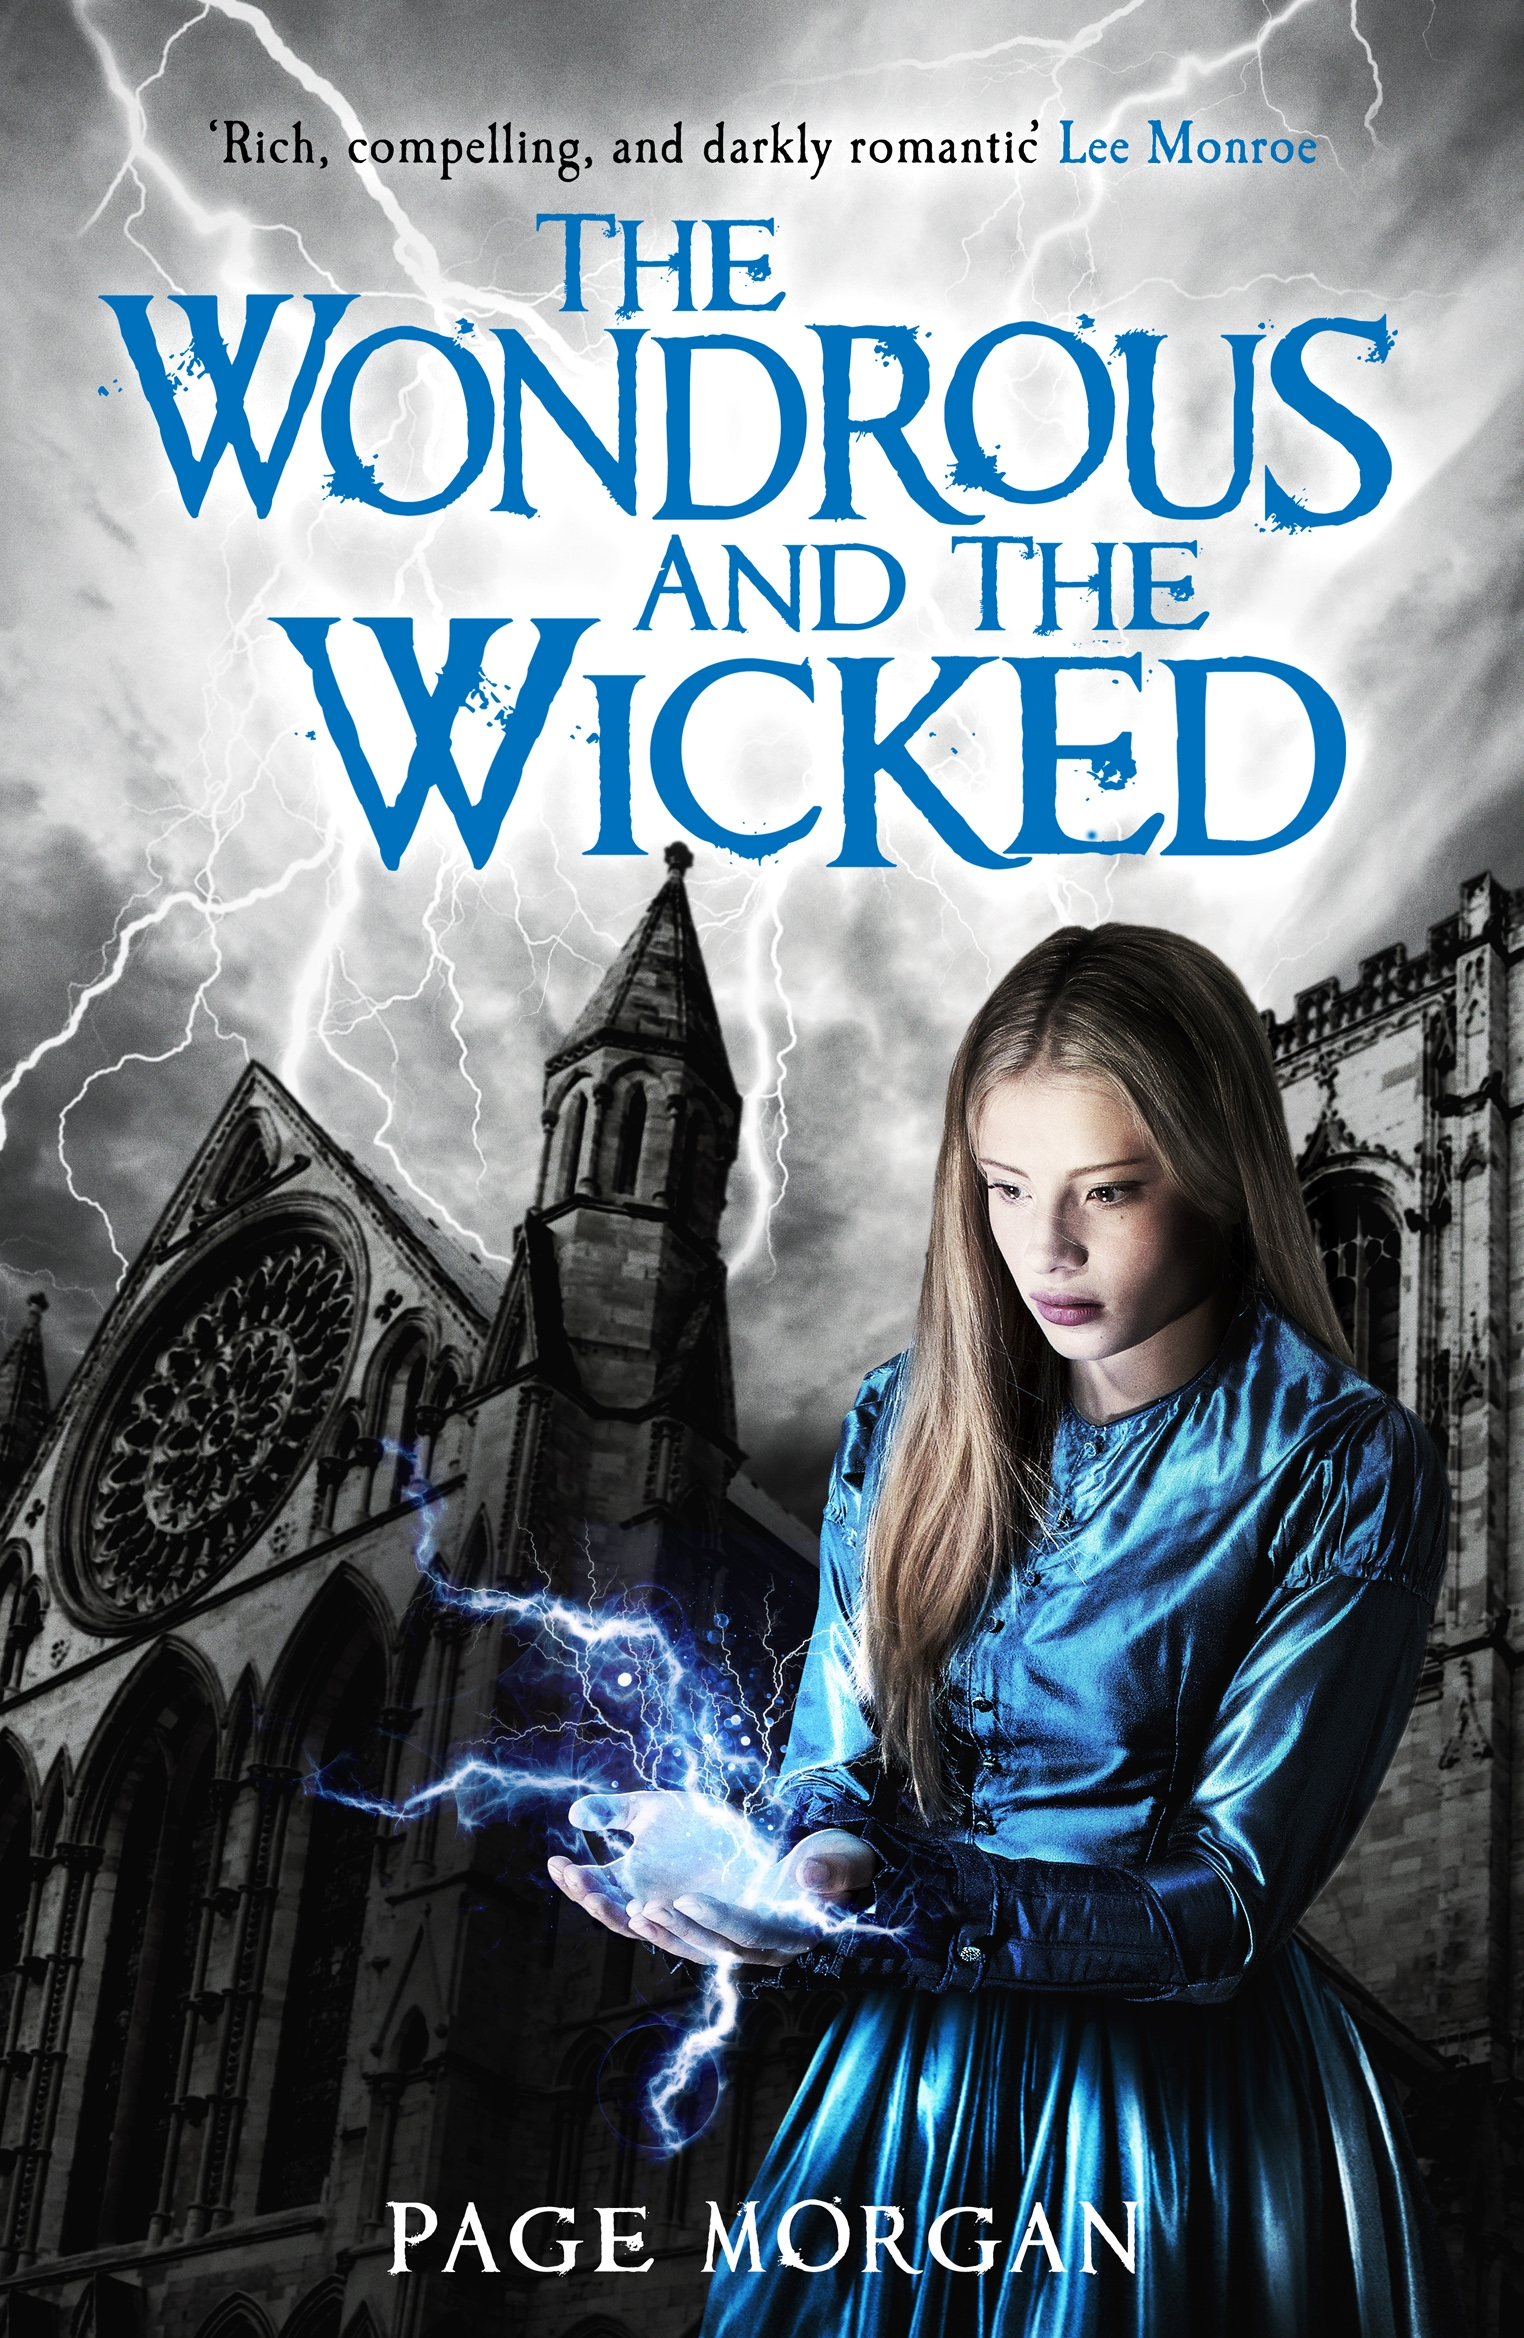 The Wondrous and the Wicked by Page Morgan